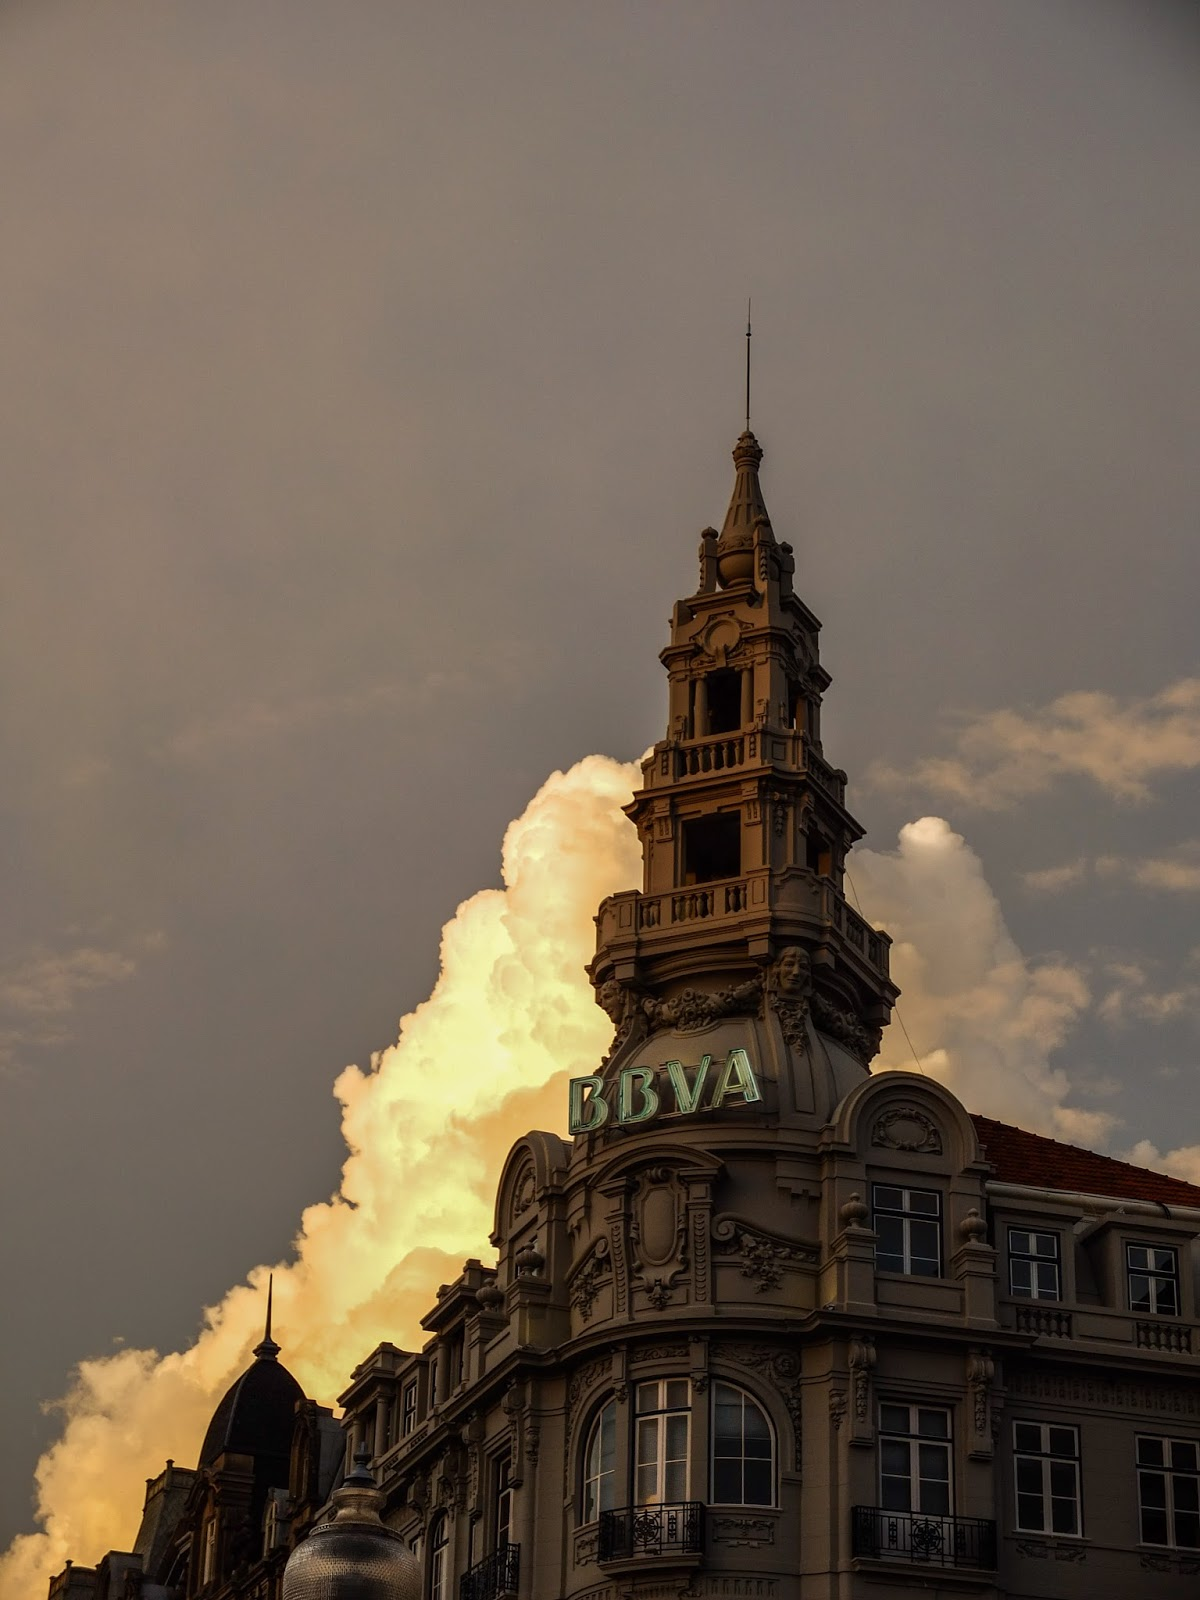 BBVA Bank building at sunset in Porto, Portugal.